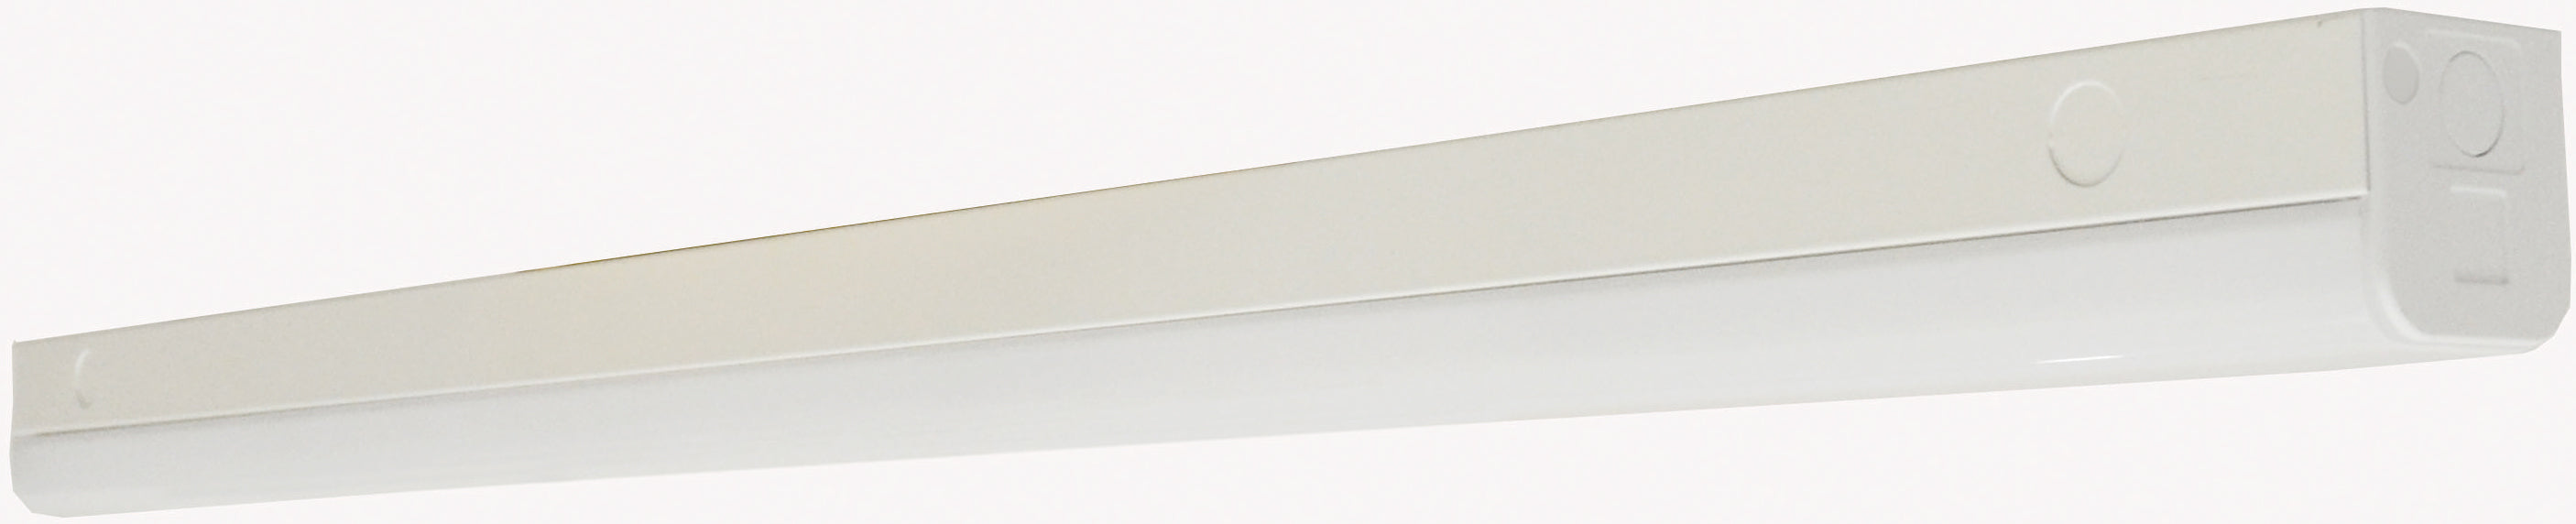 """Nuvo LED 38w 48"""" Slim Strip Light Fixture w/ knockout in White Finish 5000k"""